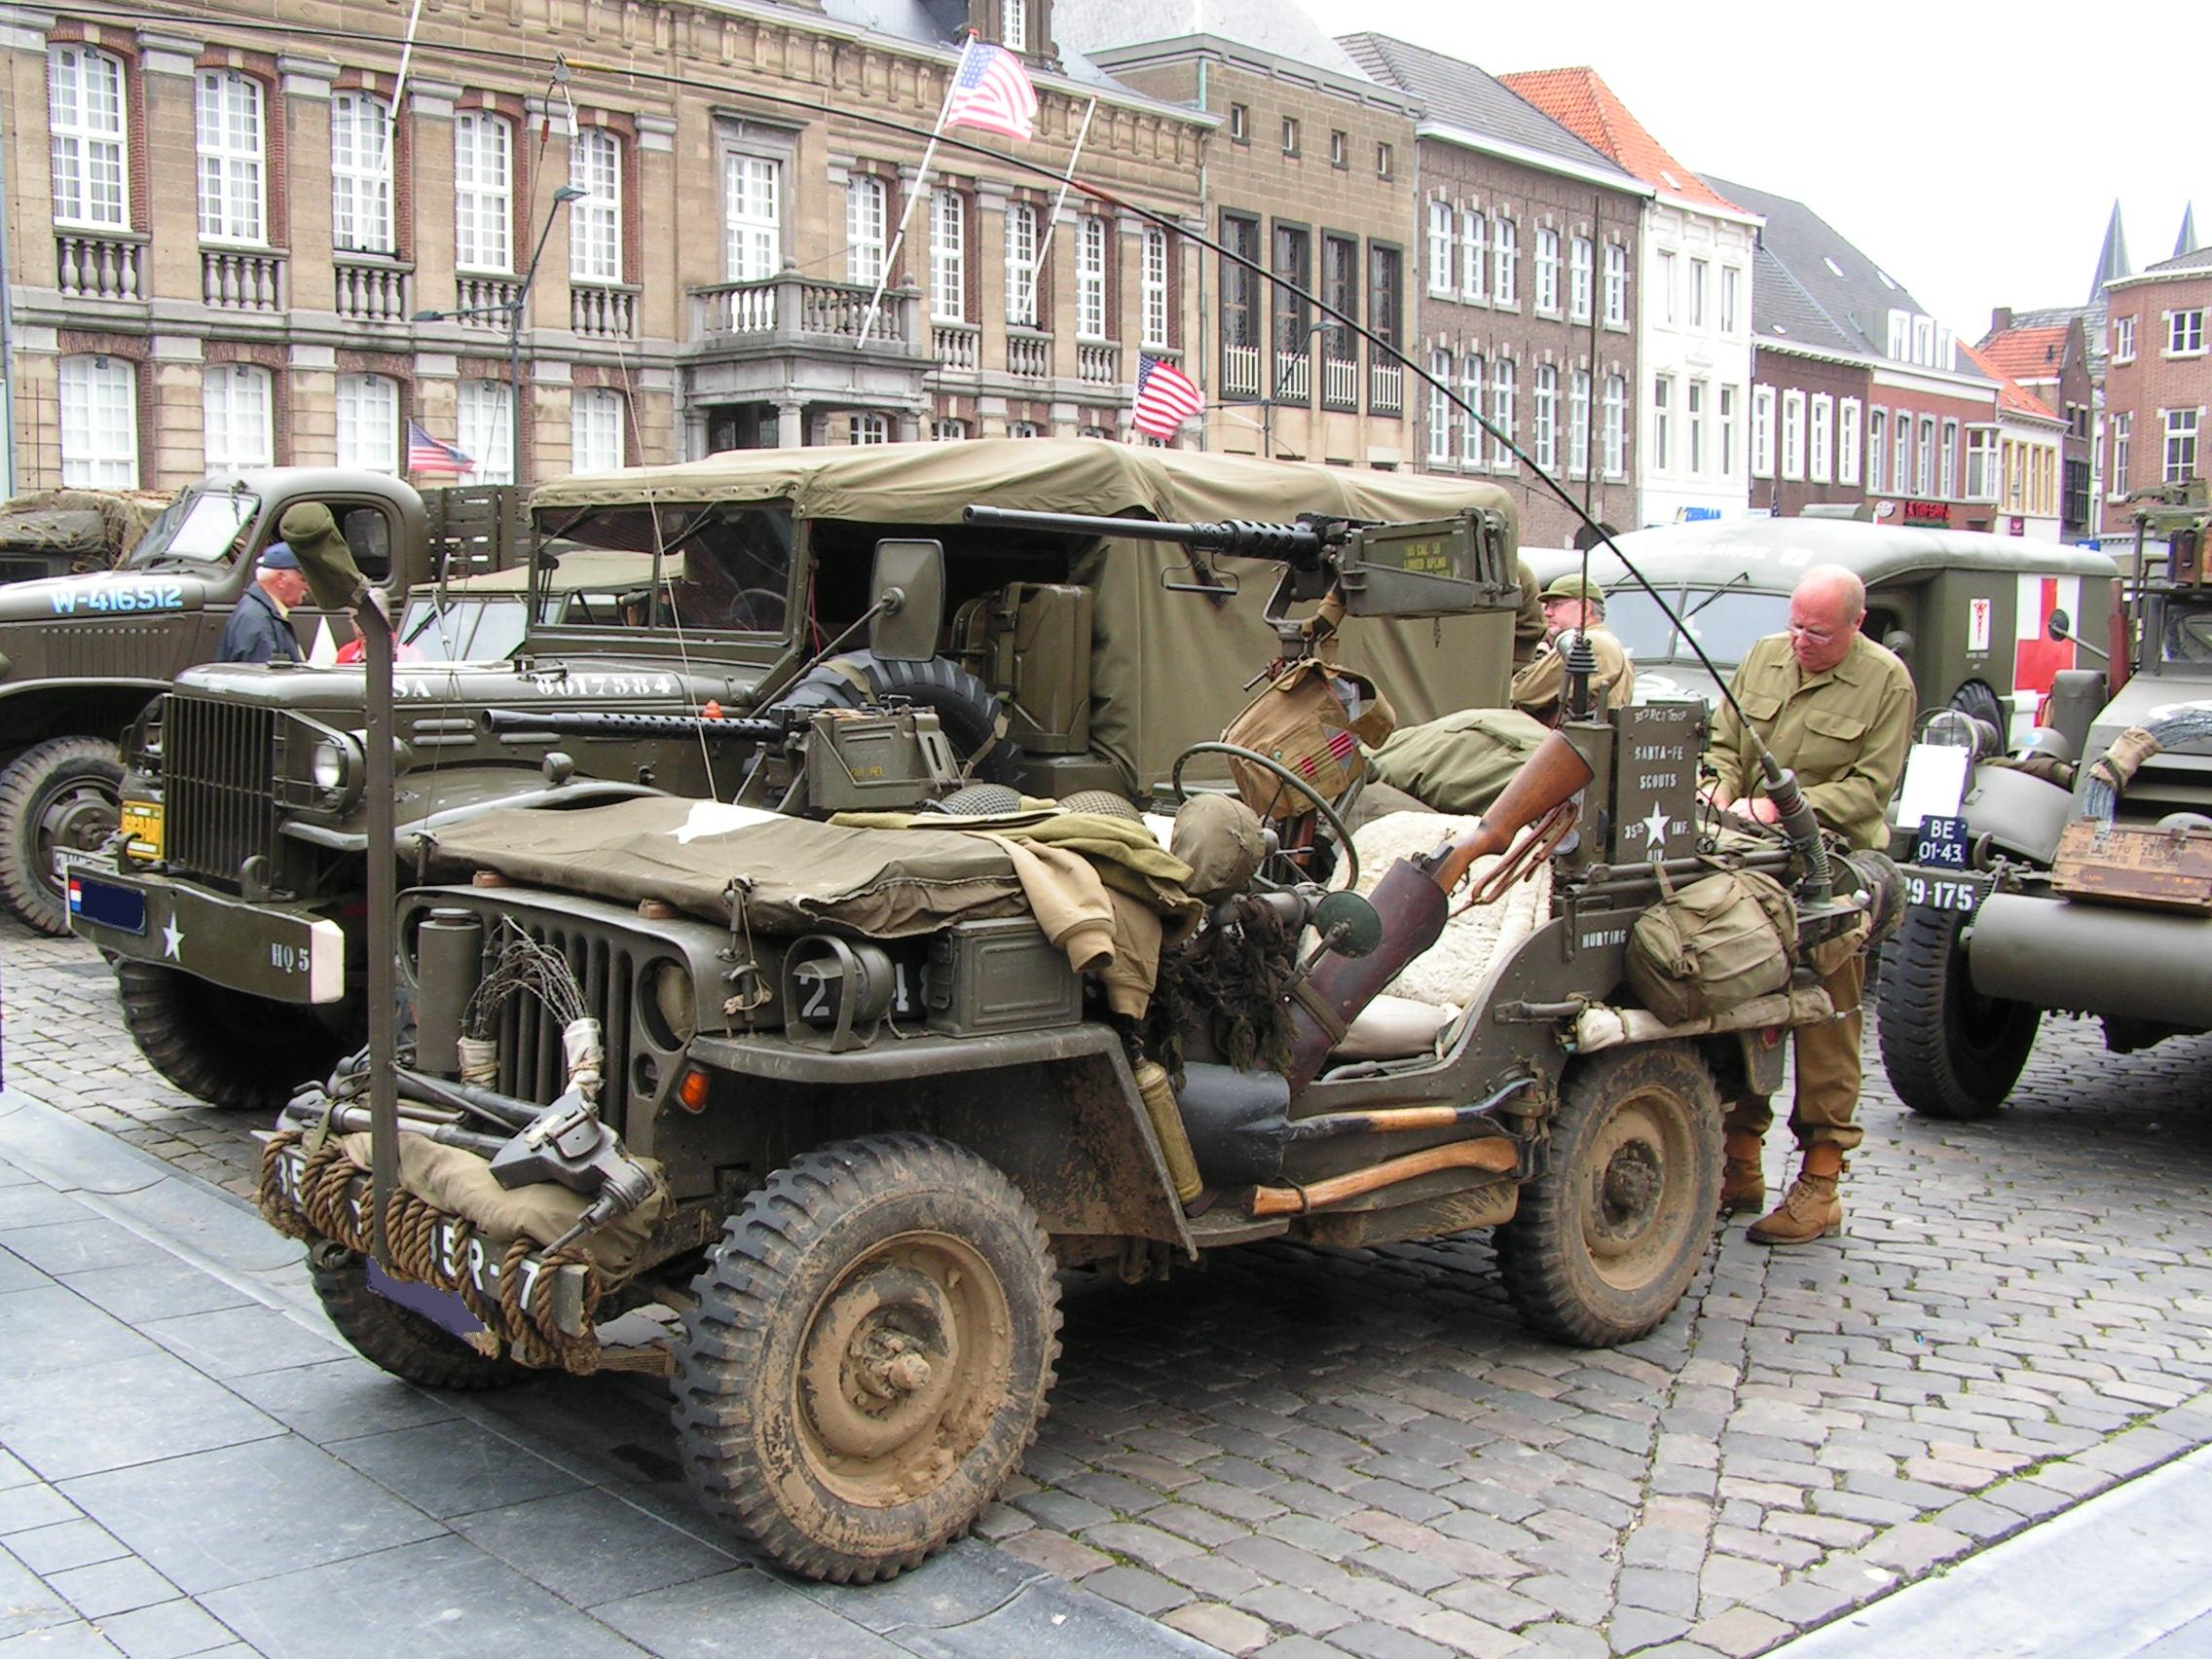 Jeep Willys history, photos on Better Parts LTD